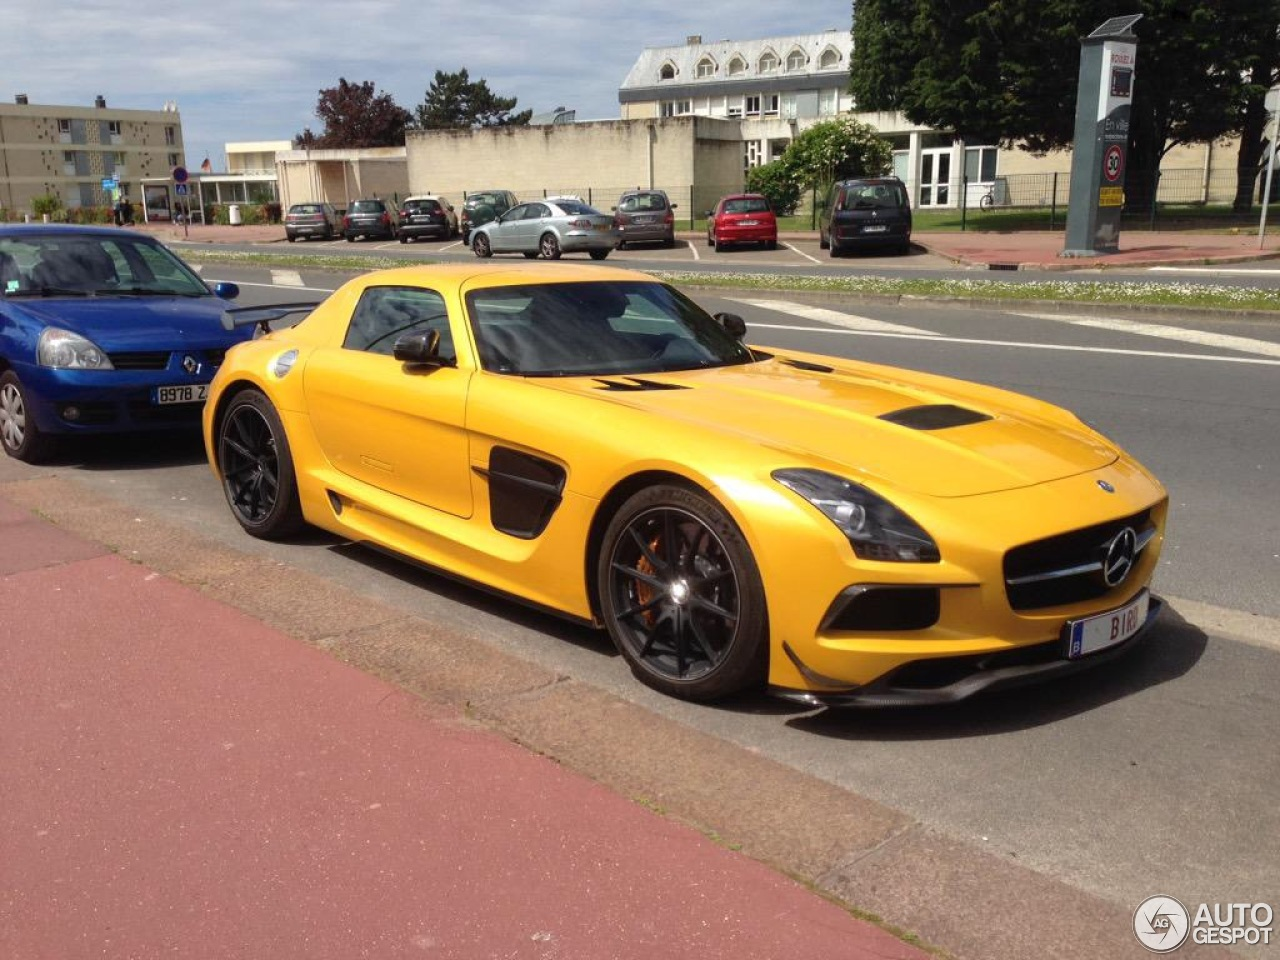 Mercedes benz sls amg black series 10 juin 2015 autogespot for 2015 mercedes benz sls amg